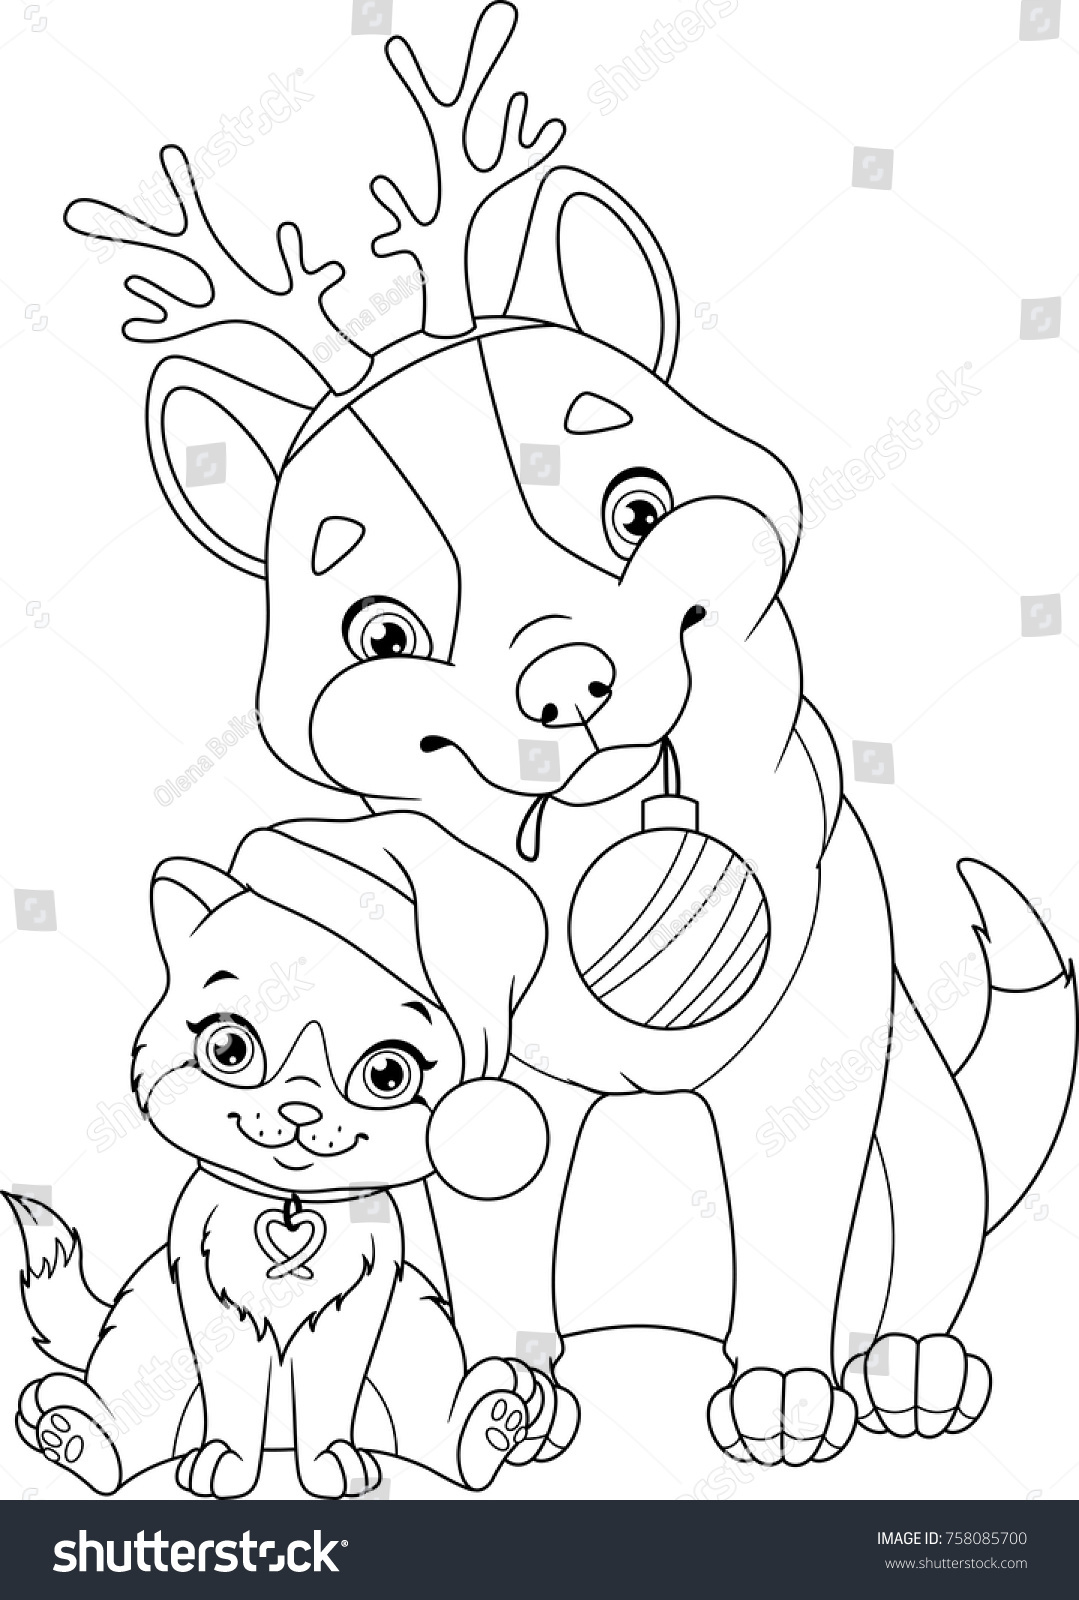 Christmas Dog Coloring Page With Pages